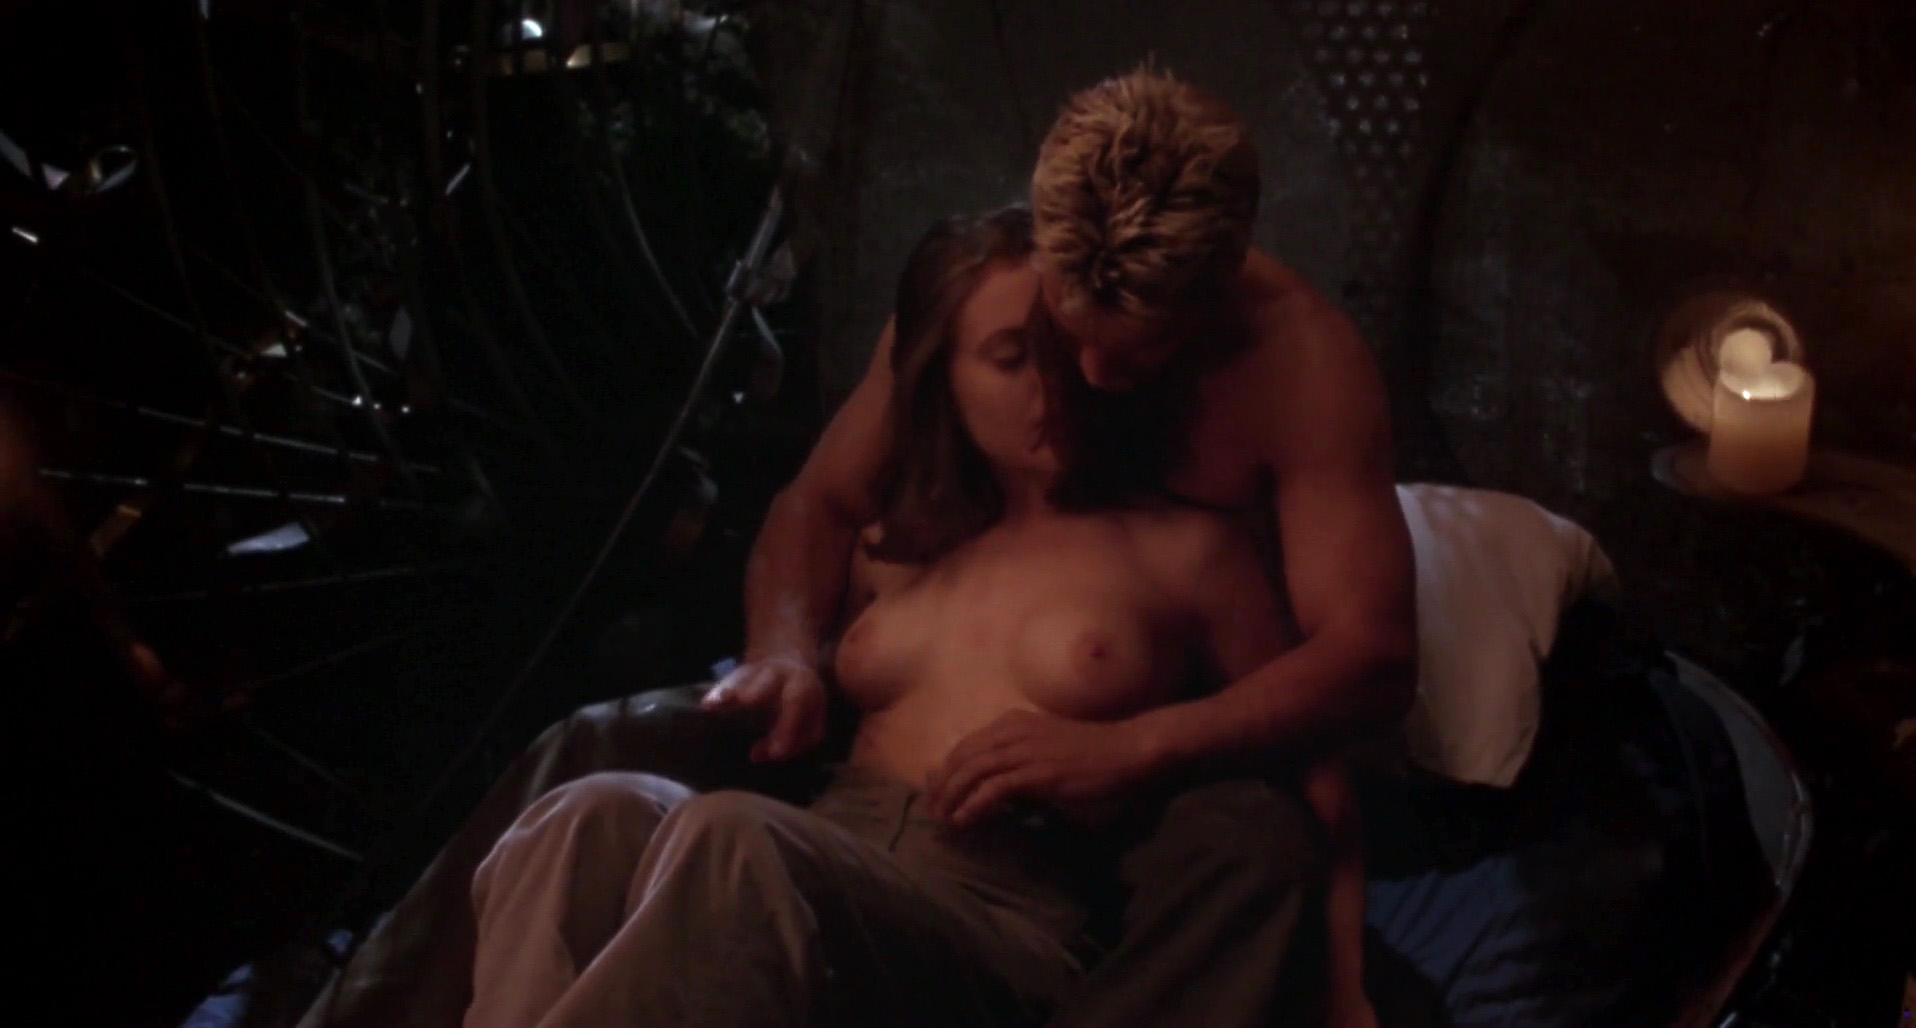 Alyssa Milano Nude Embrace The Vampire topless » page 551 » nudecelebvideo - your box of nude